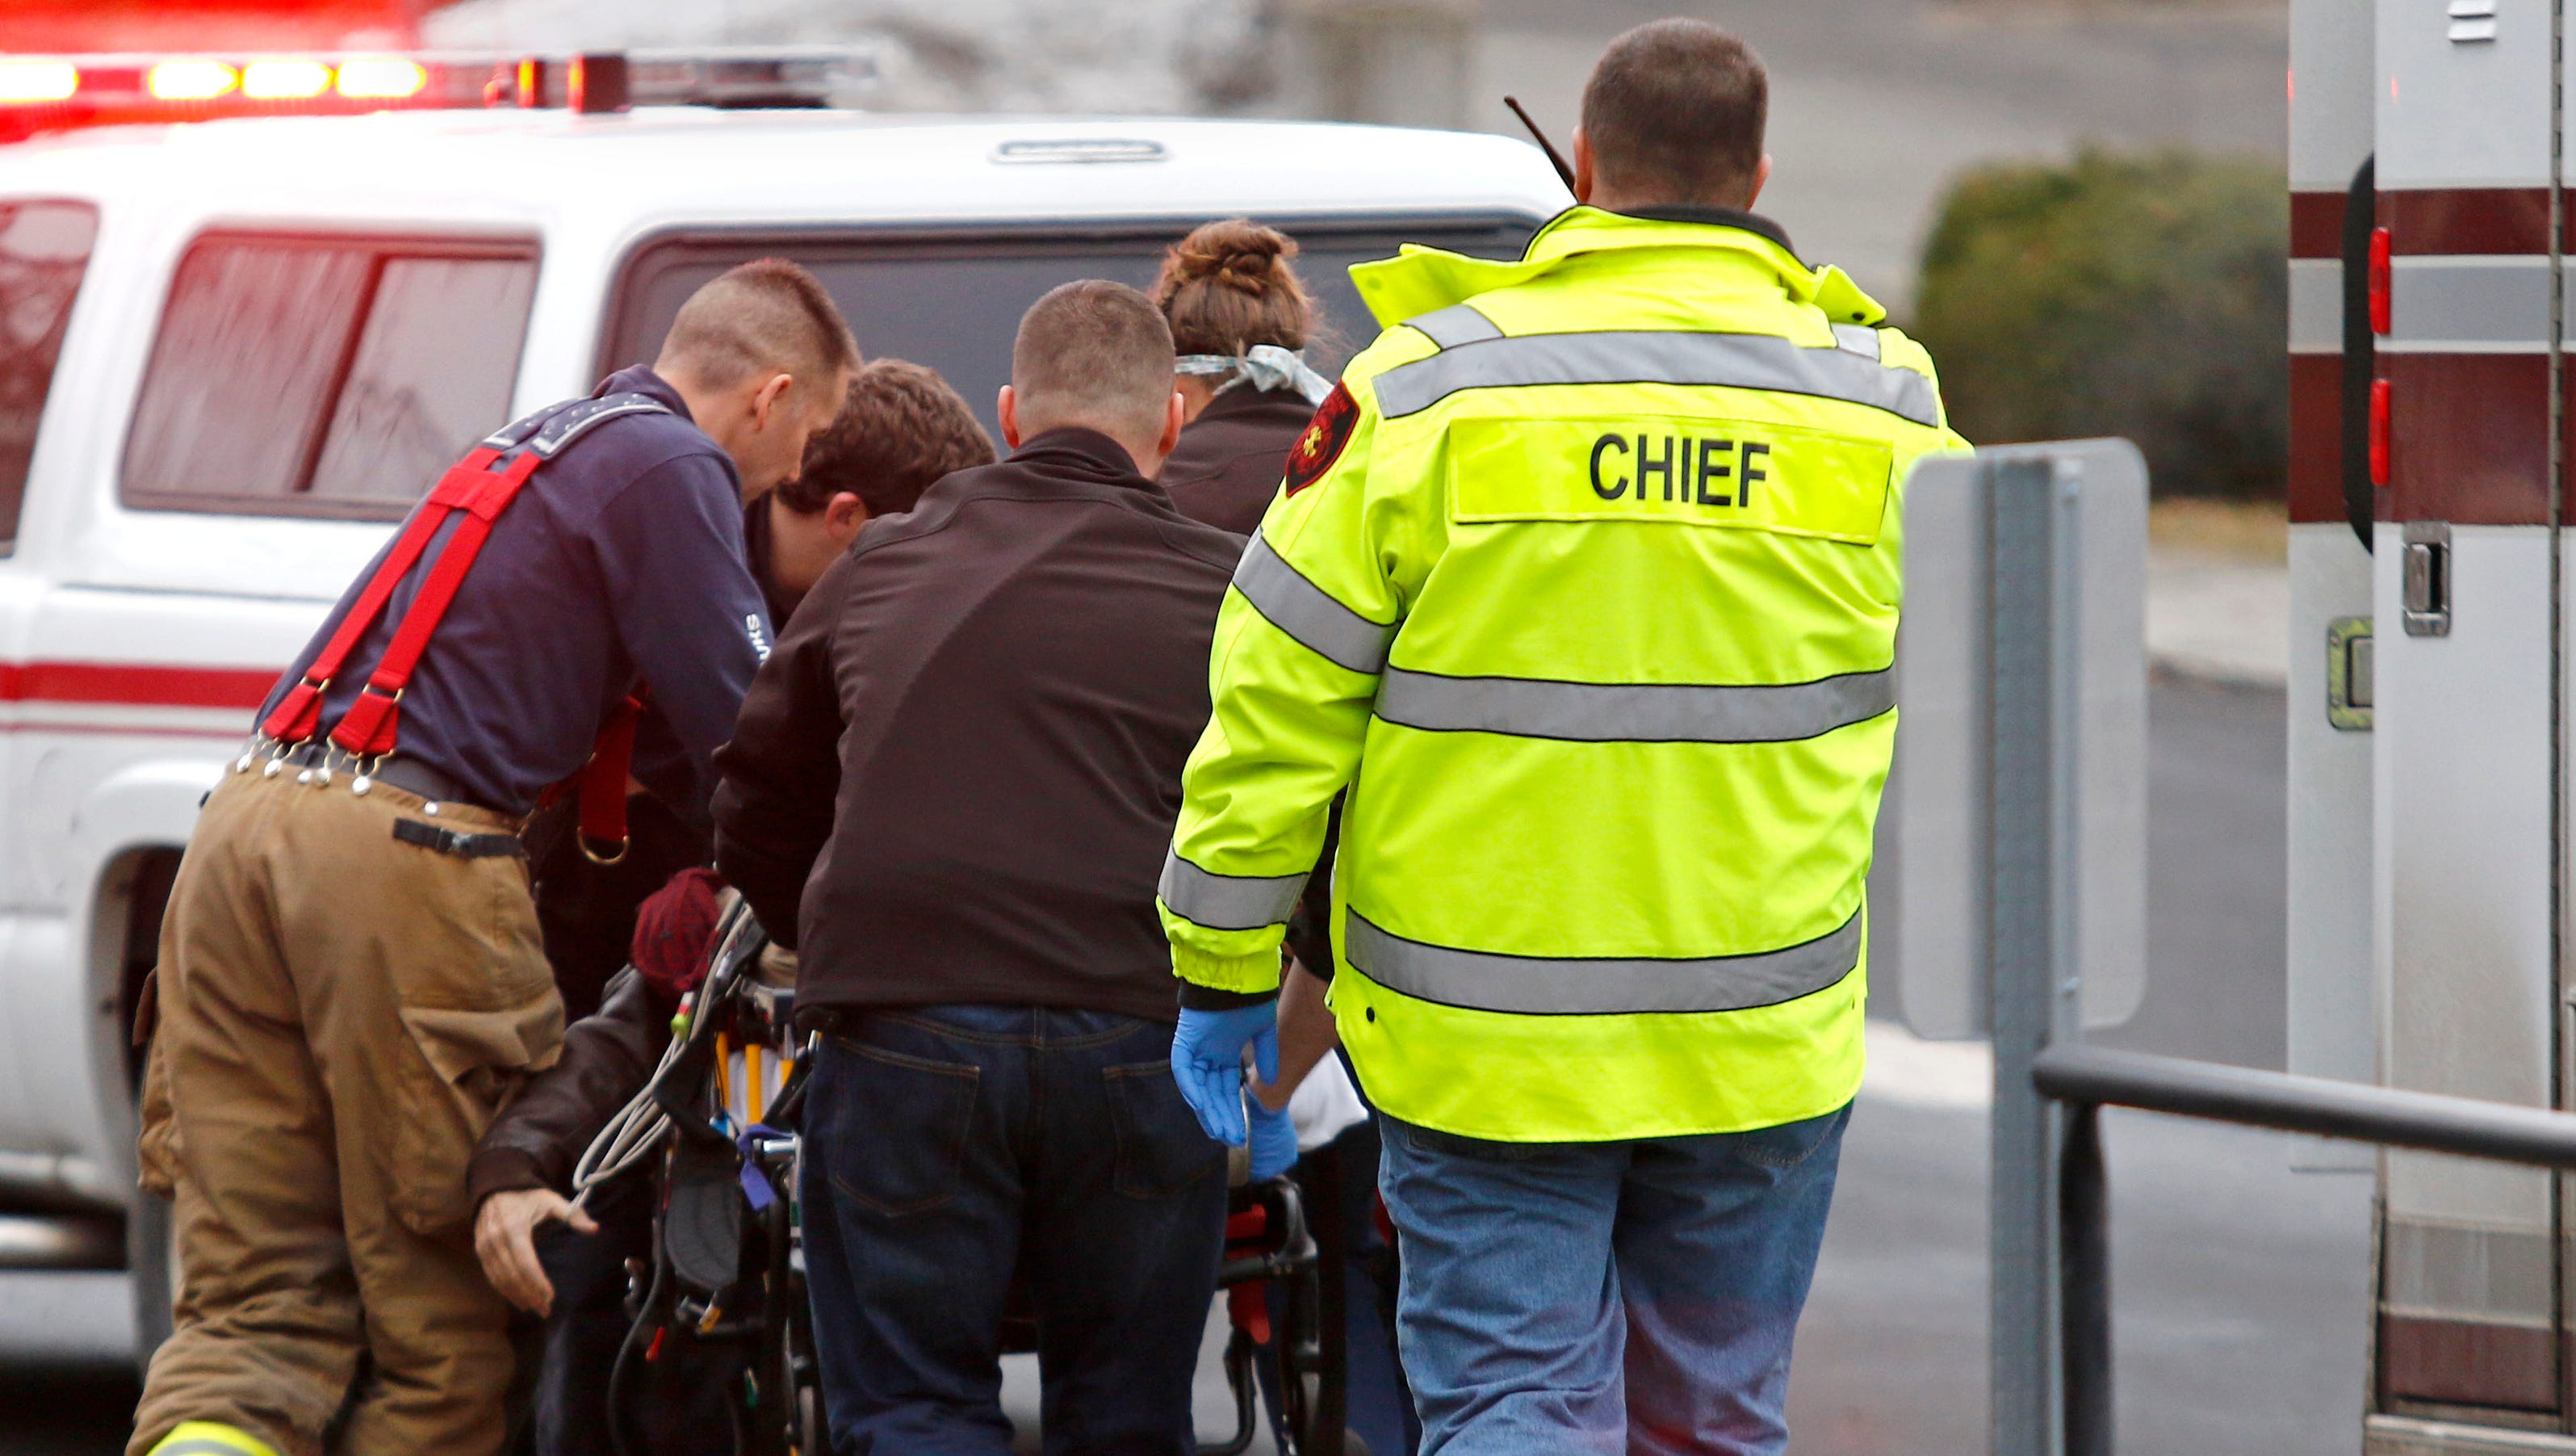 Idaho gunman faces 3 murder charges in shooting spree